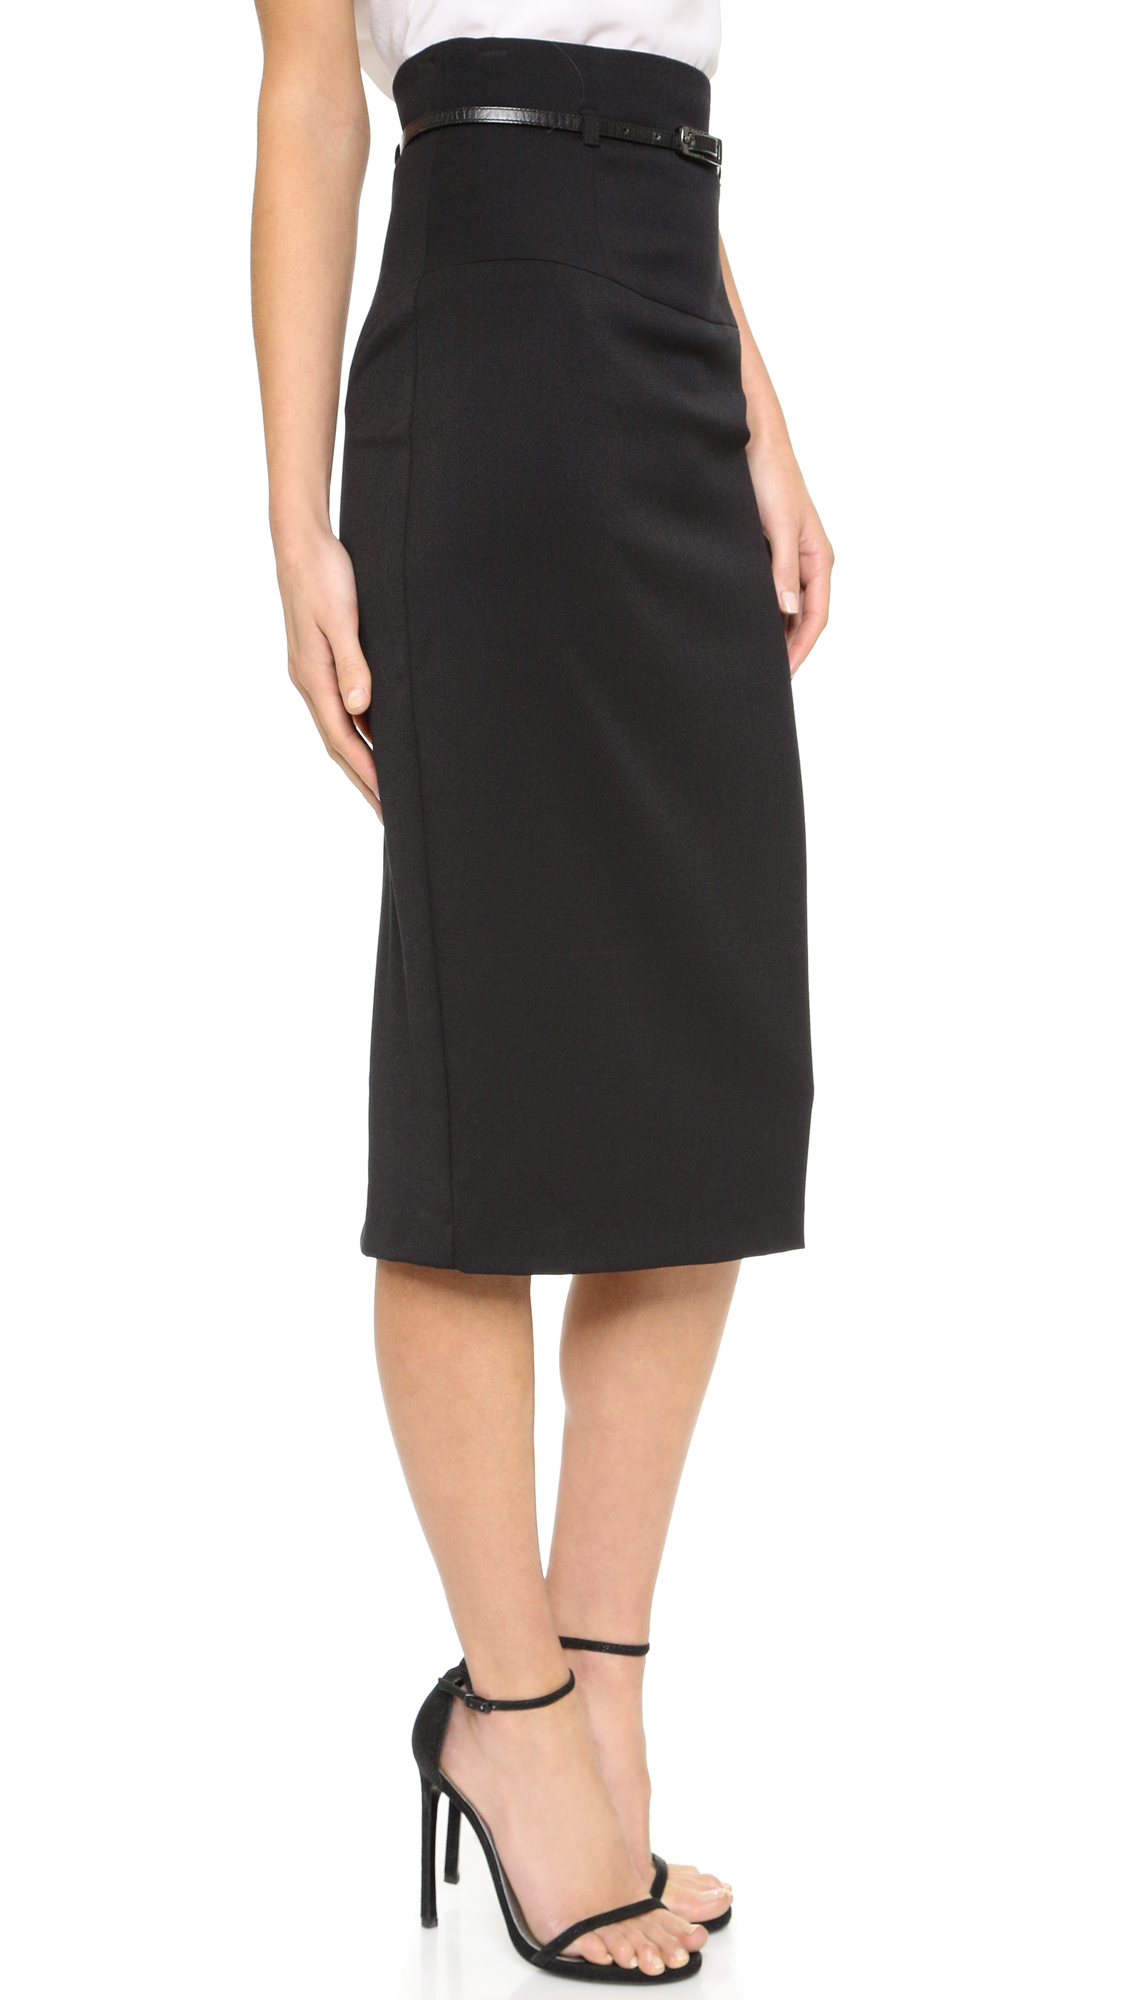 Find great deals on eBay for high waisted black pencil skirt. Shop with confidence.